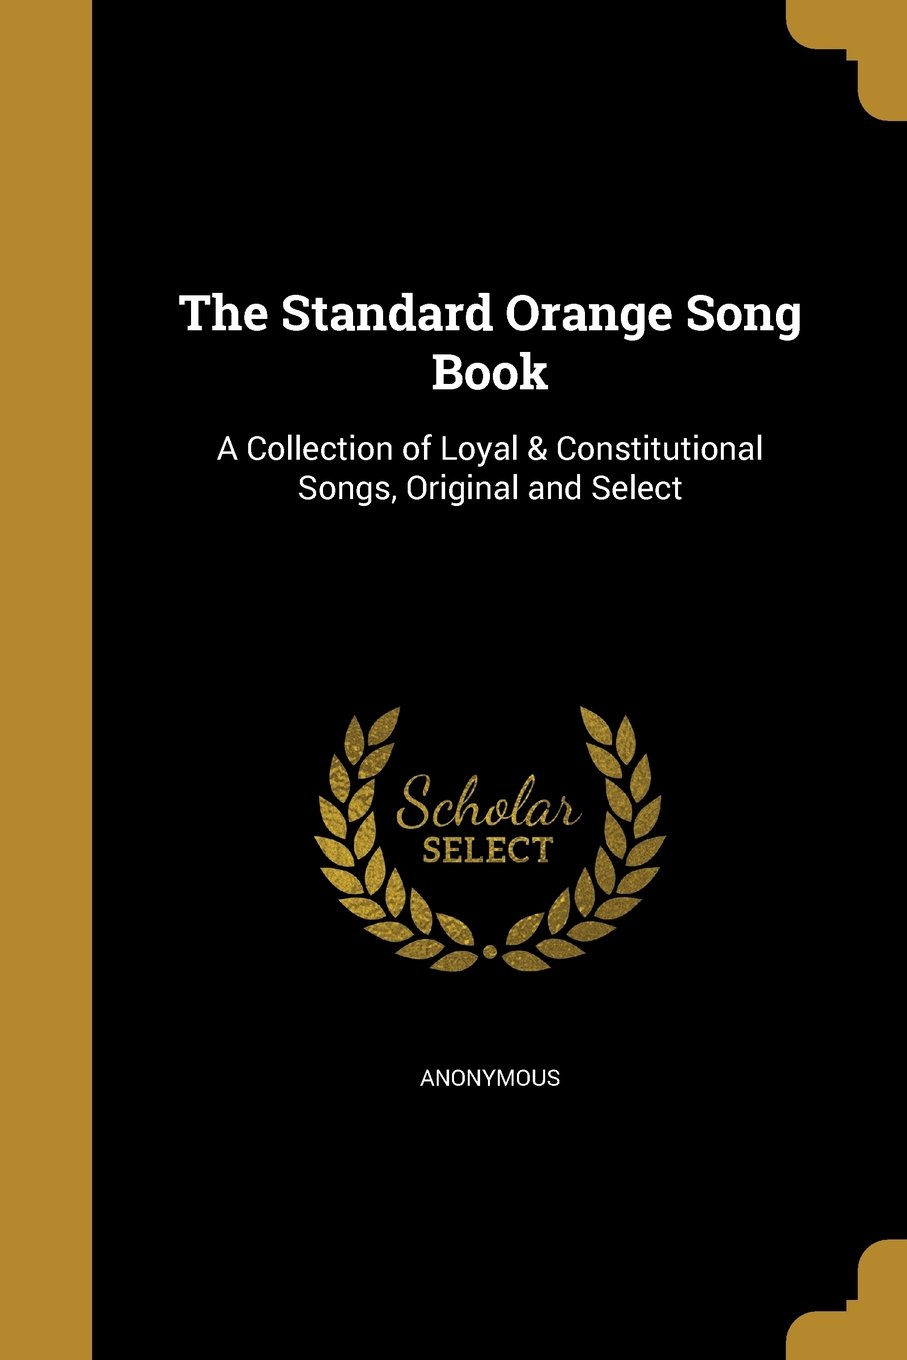 The Standard Orange Song Book: A Collection of Loyal